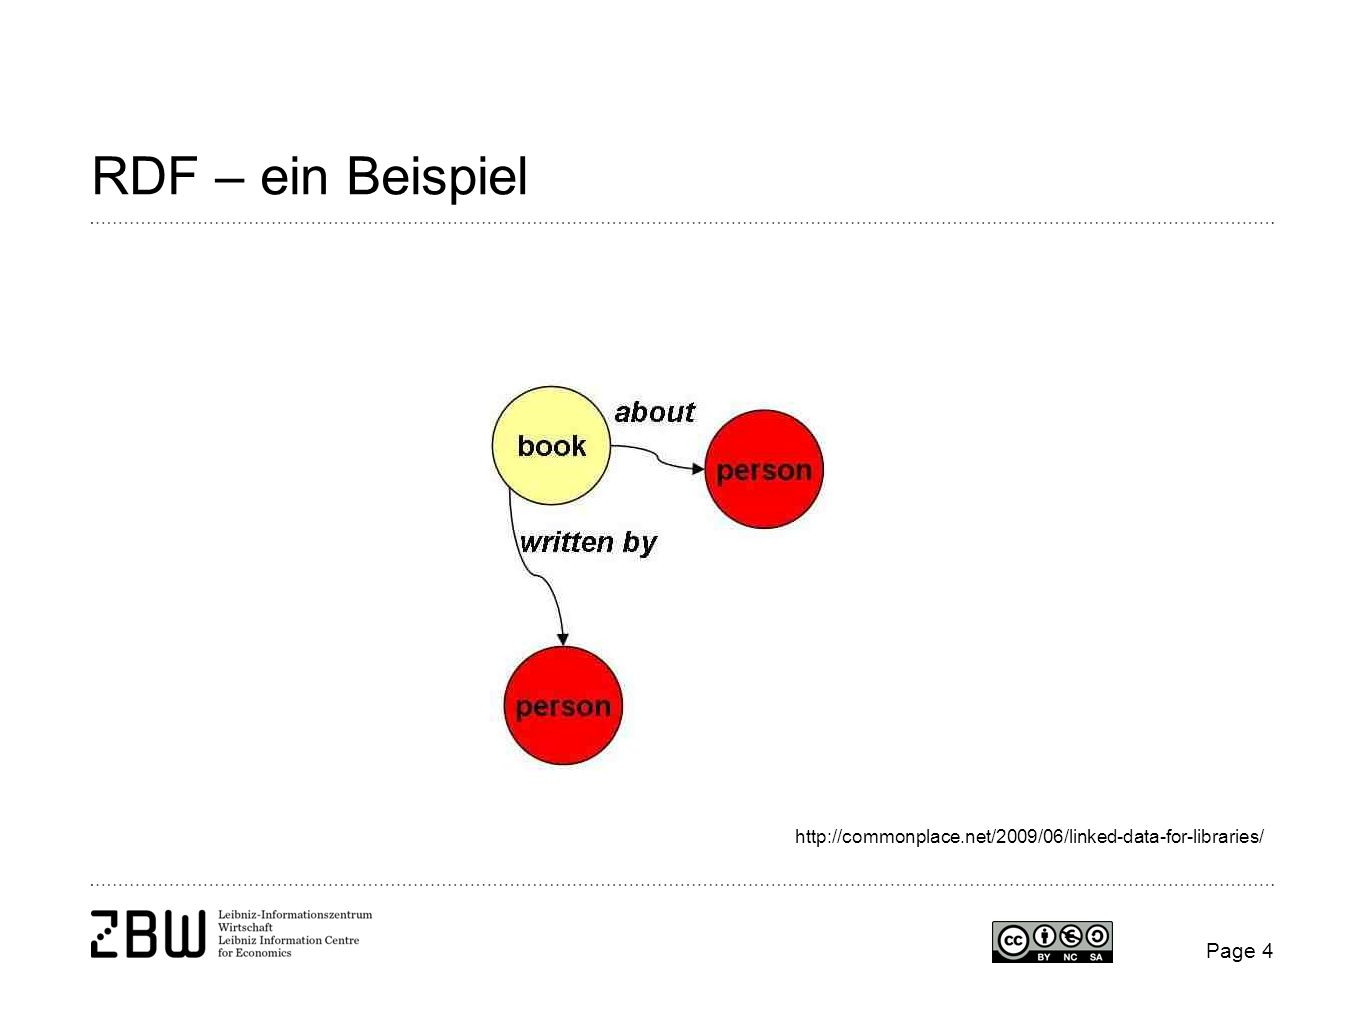 RDF – ein Beispiel http://commonplace.net/2009/06/linked-data-for-libraries/